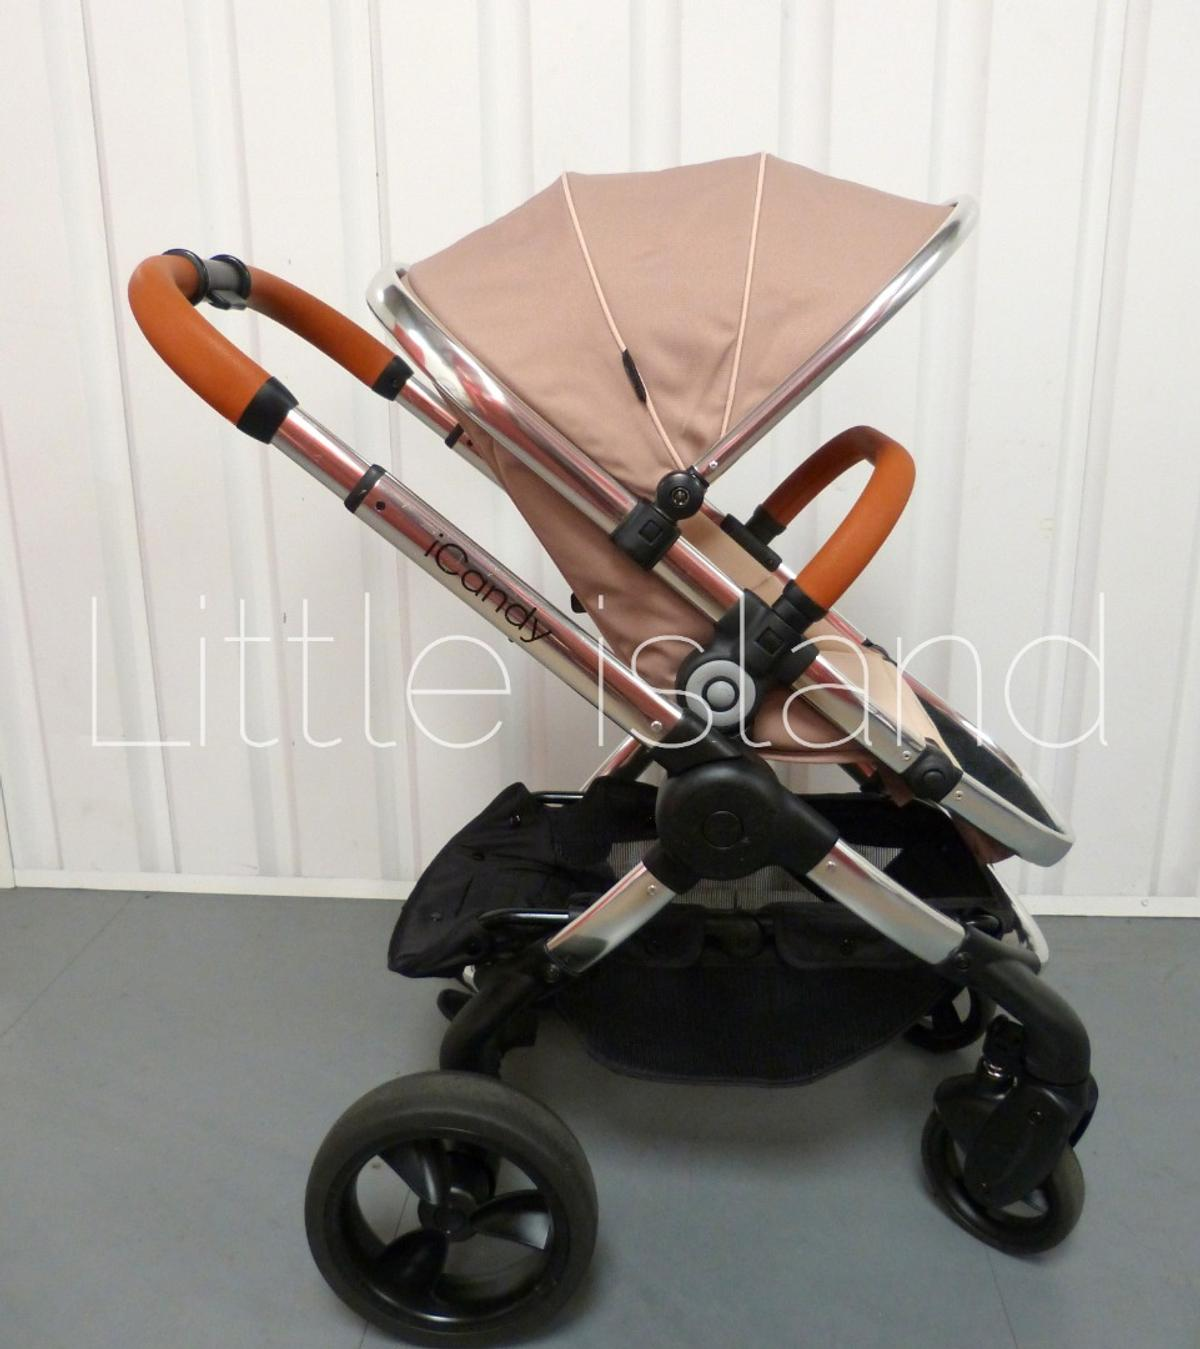 Collection From M34 Manchester  Pram was professionally cleaned and it's in great used condition  FROM PET AND SMOKE FREE HOUSE  PUSHCHAIR: * Frame * Wheels * Hood * Main seat * Bumper bar * Shopping basket  CARRYCOT: * Apron * Mattress * Linning * Raincover  Maxi Cosi Car Seat * sun canopy * head huger * newborn cushion * shoulder pads * crotch pad